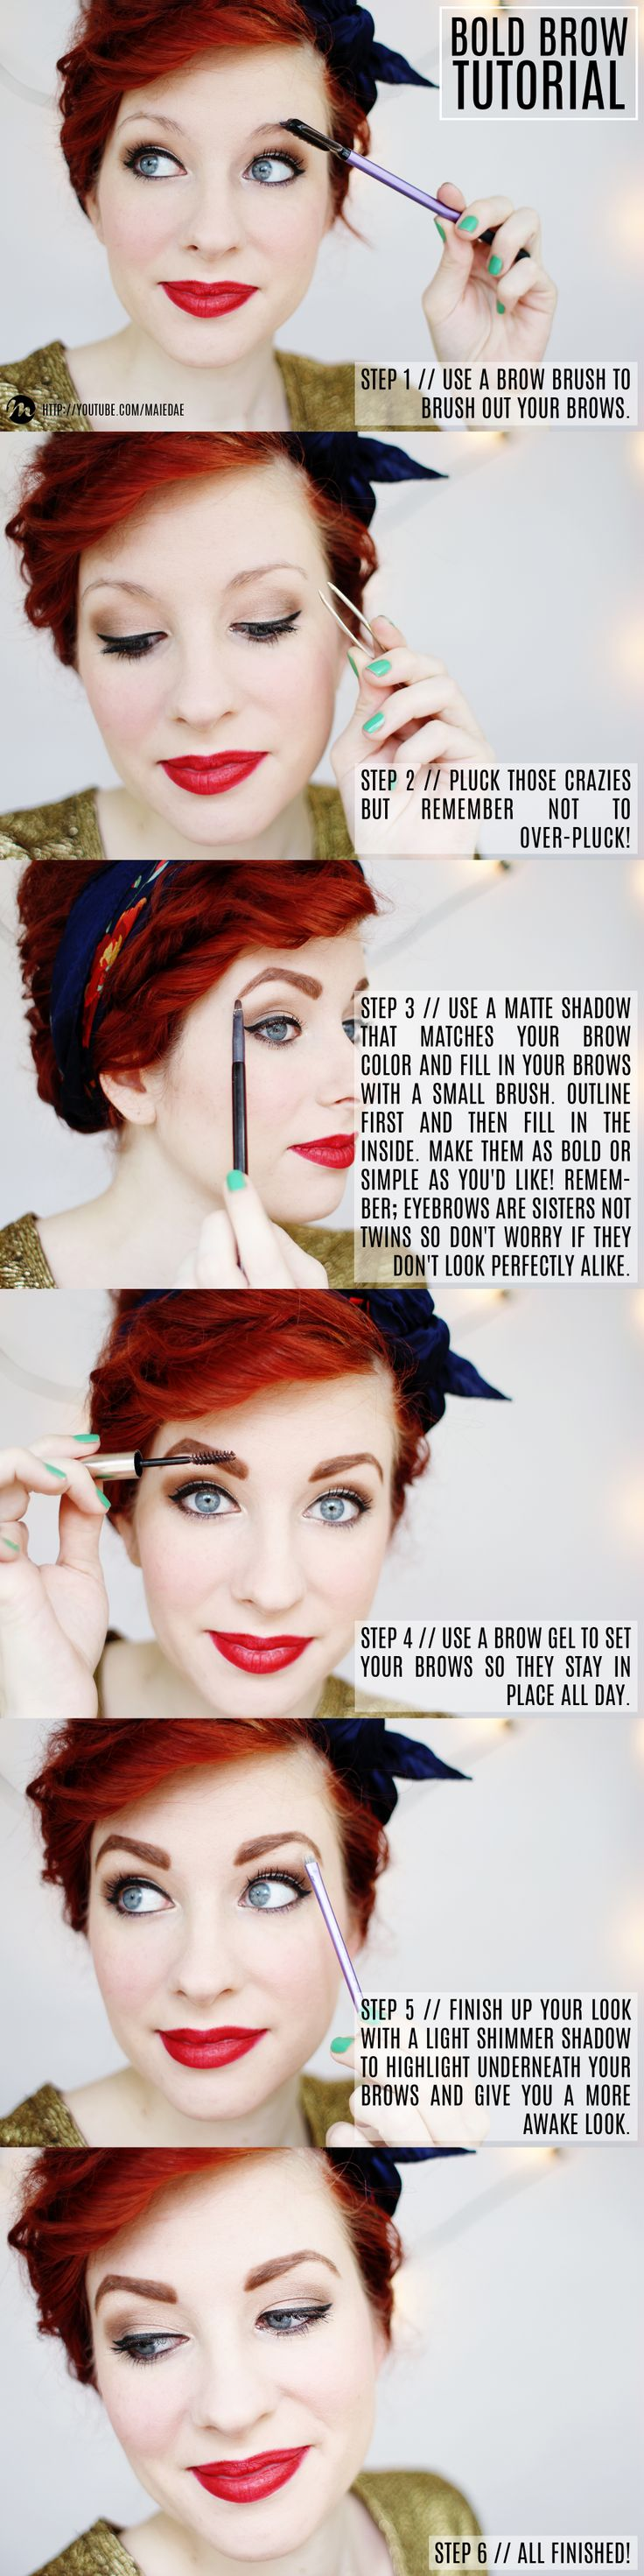 15 Beauty Hacks That Will Make You Look Like Audrey Hepburn I Need